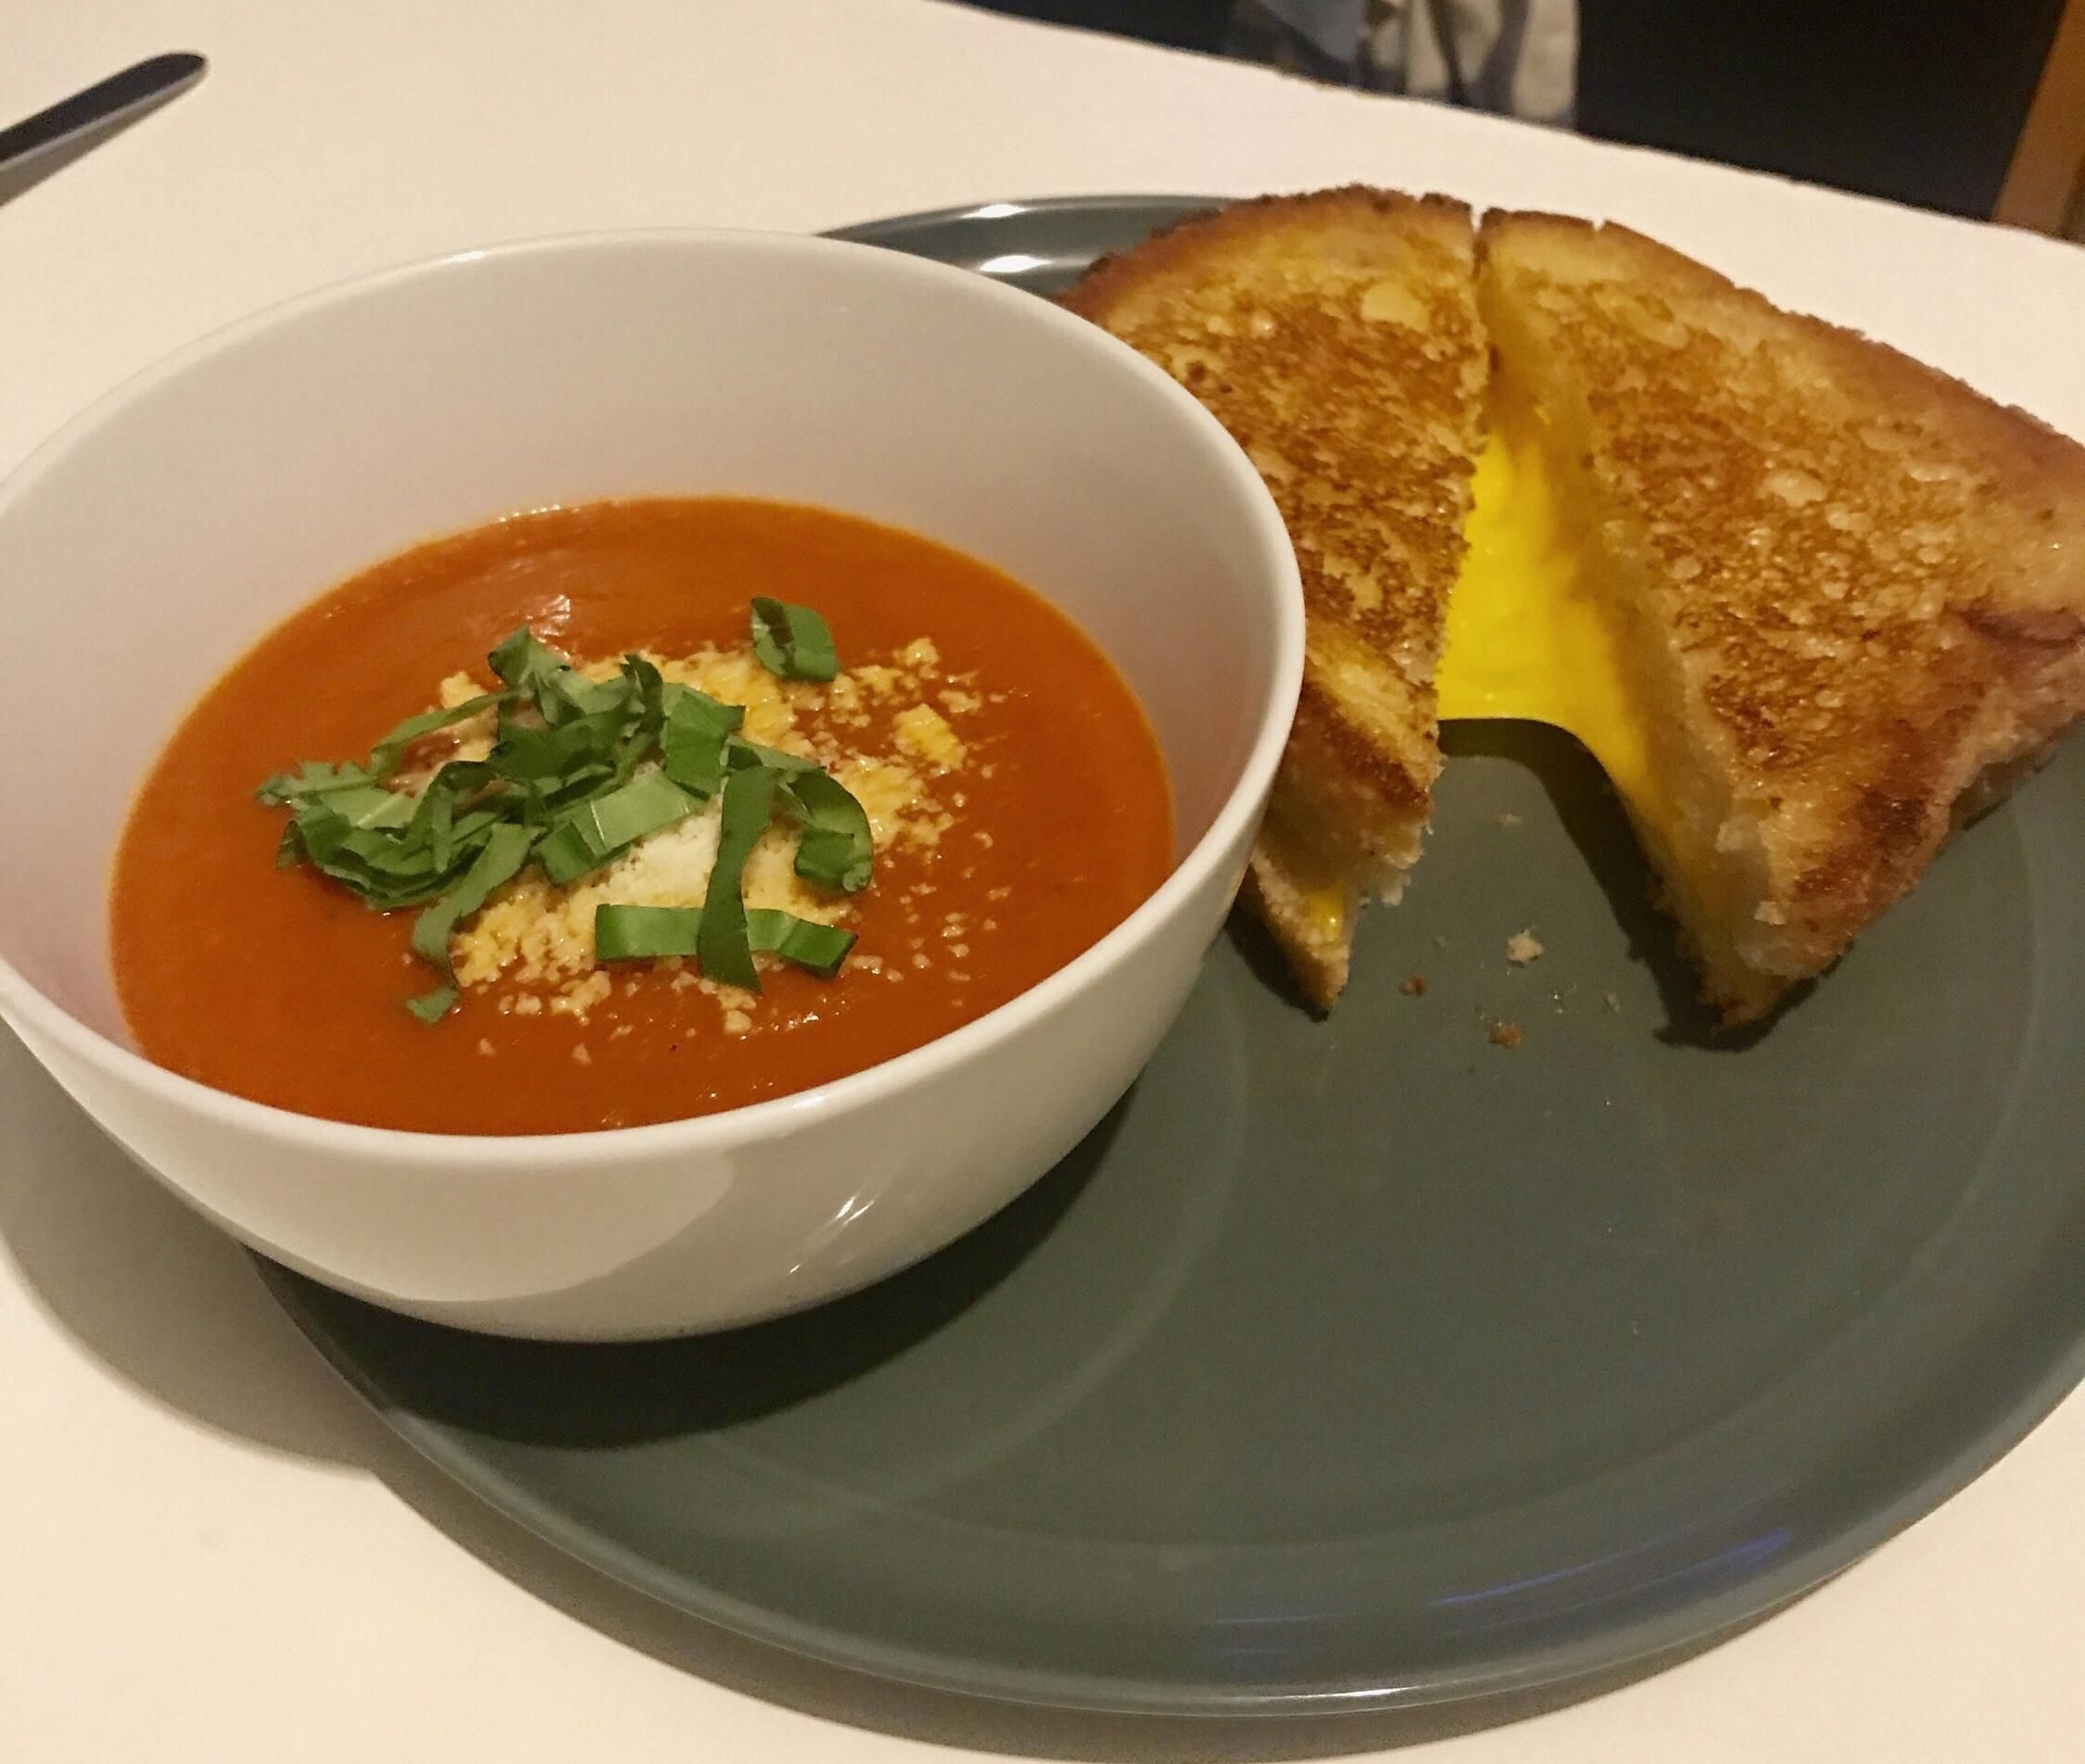 [Homemade] Grilled Cheese & Tomato Soup